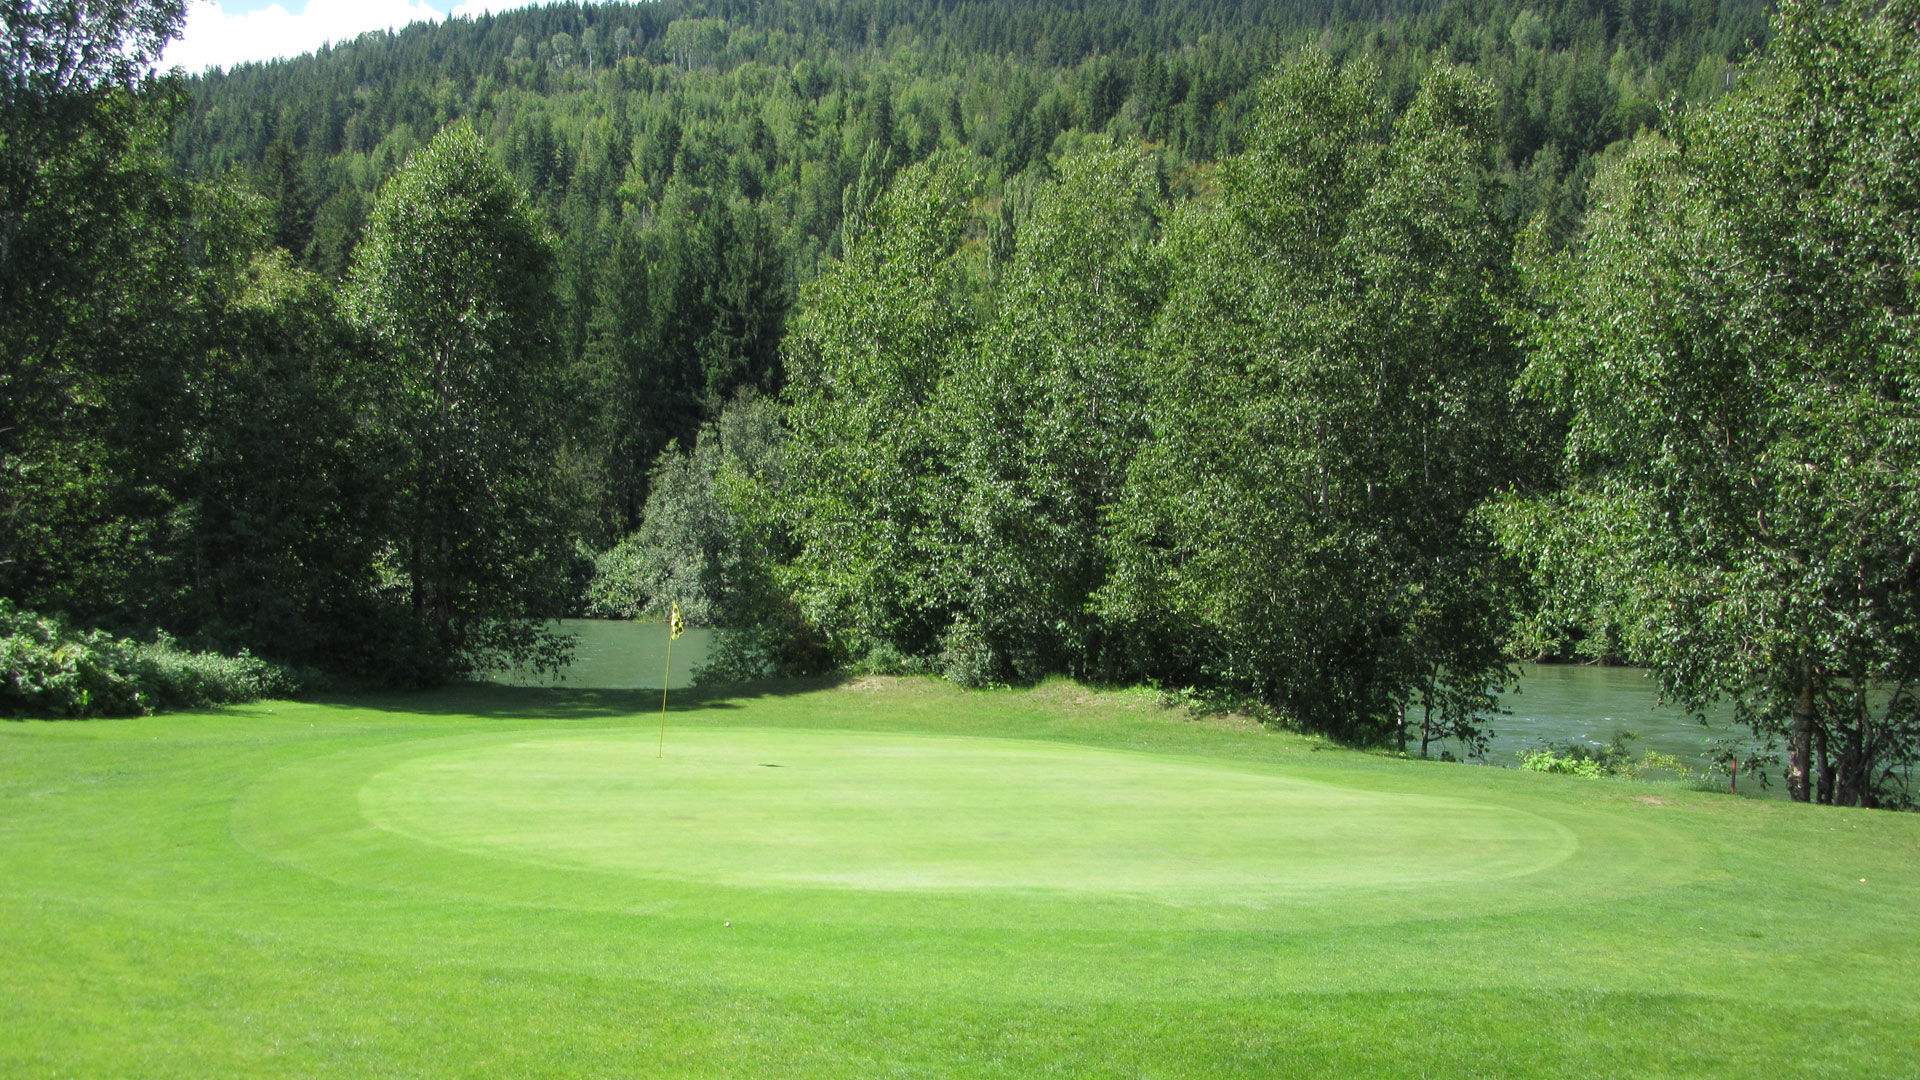 Eagle River Golf - Hole 4 Green